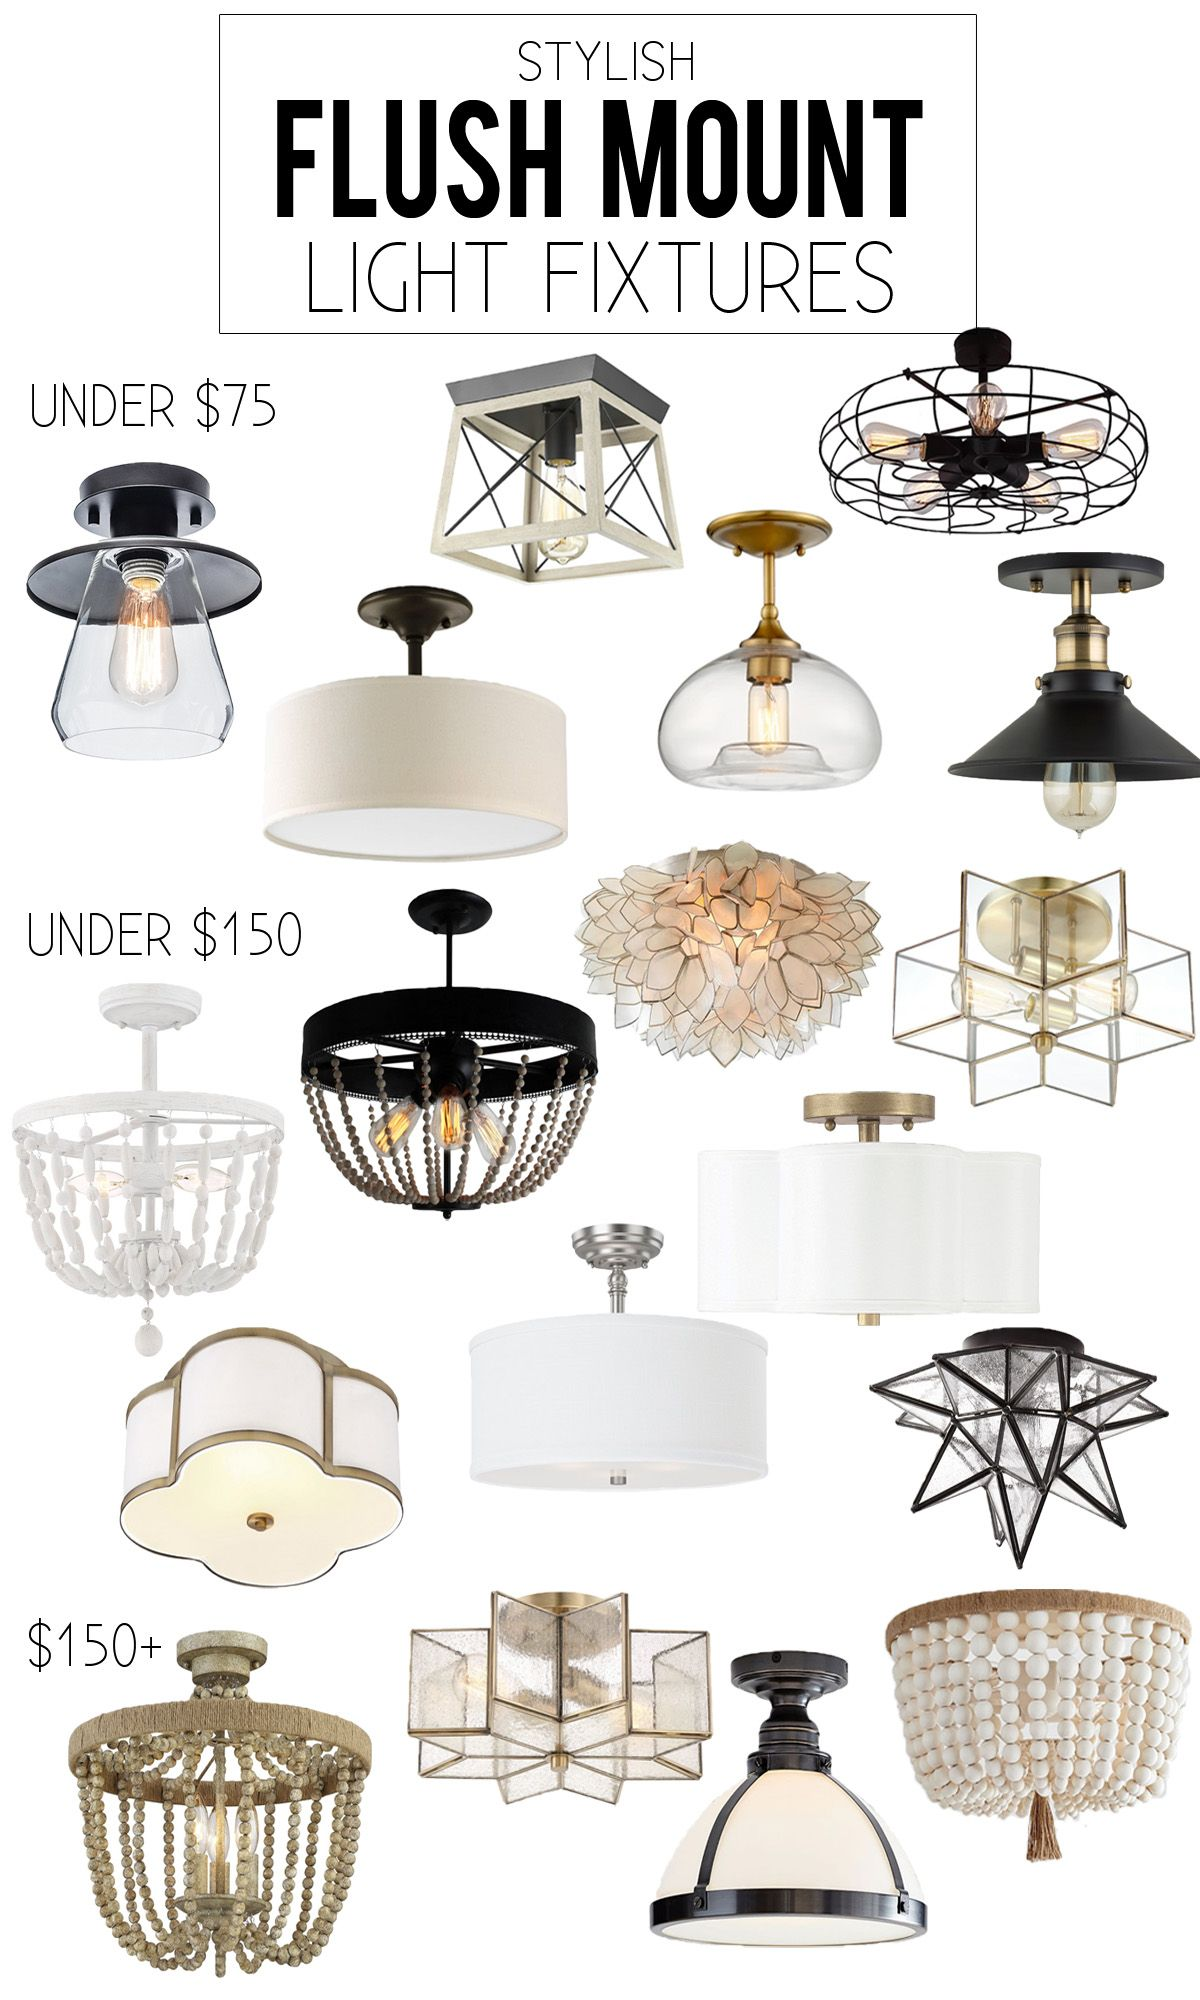 Stylish Collection Of Flush Mount Light Fixtures